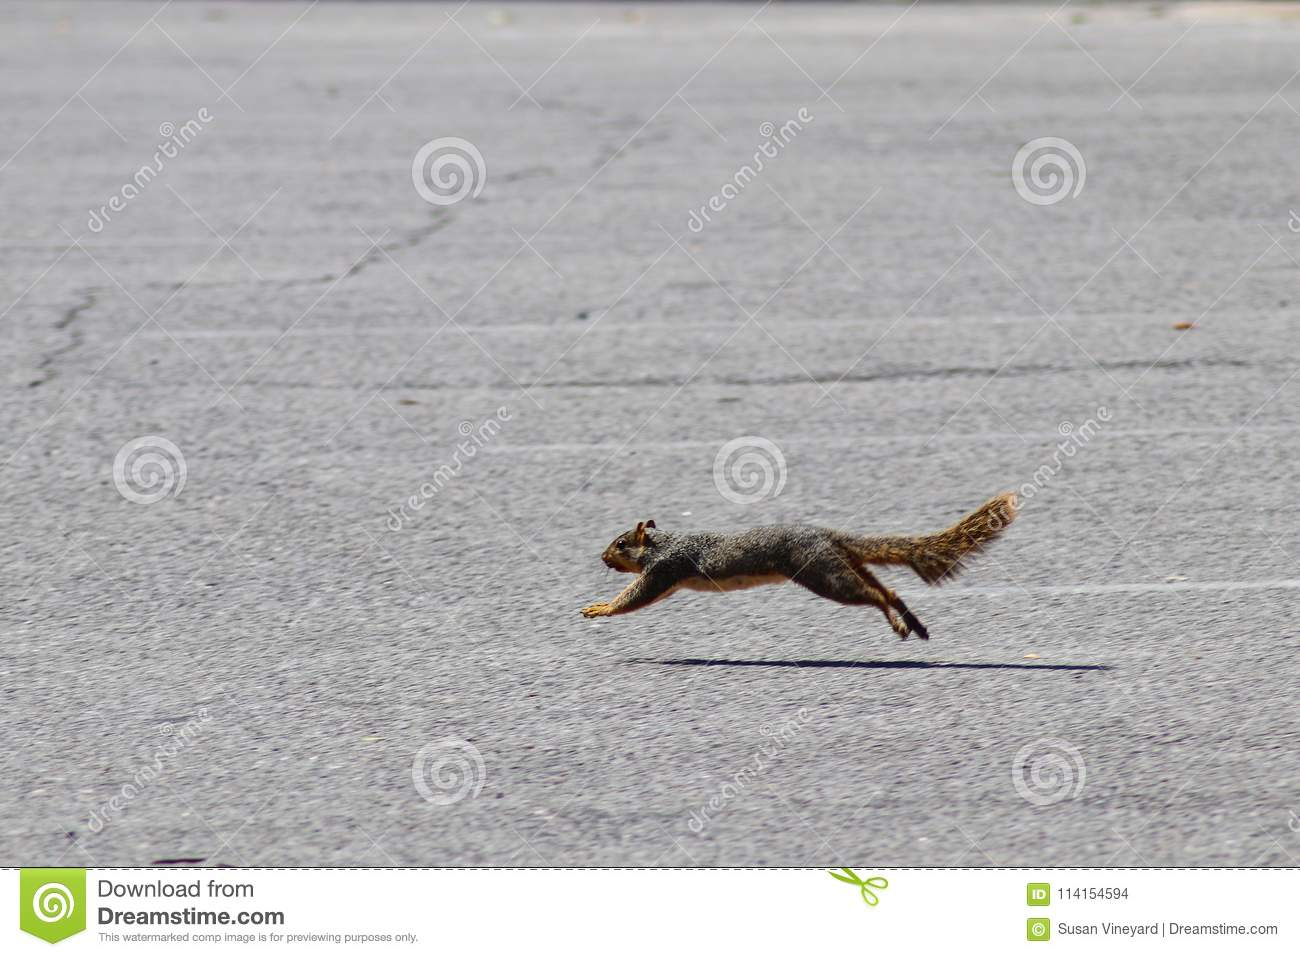 Squirrel on the move - running and caught in a jump off the ground